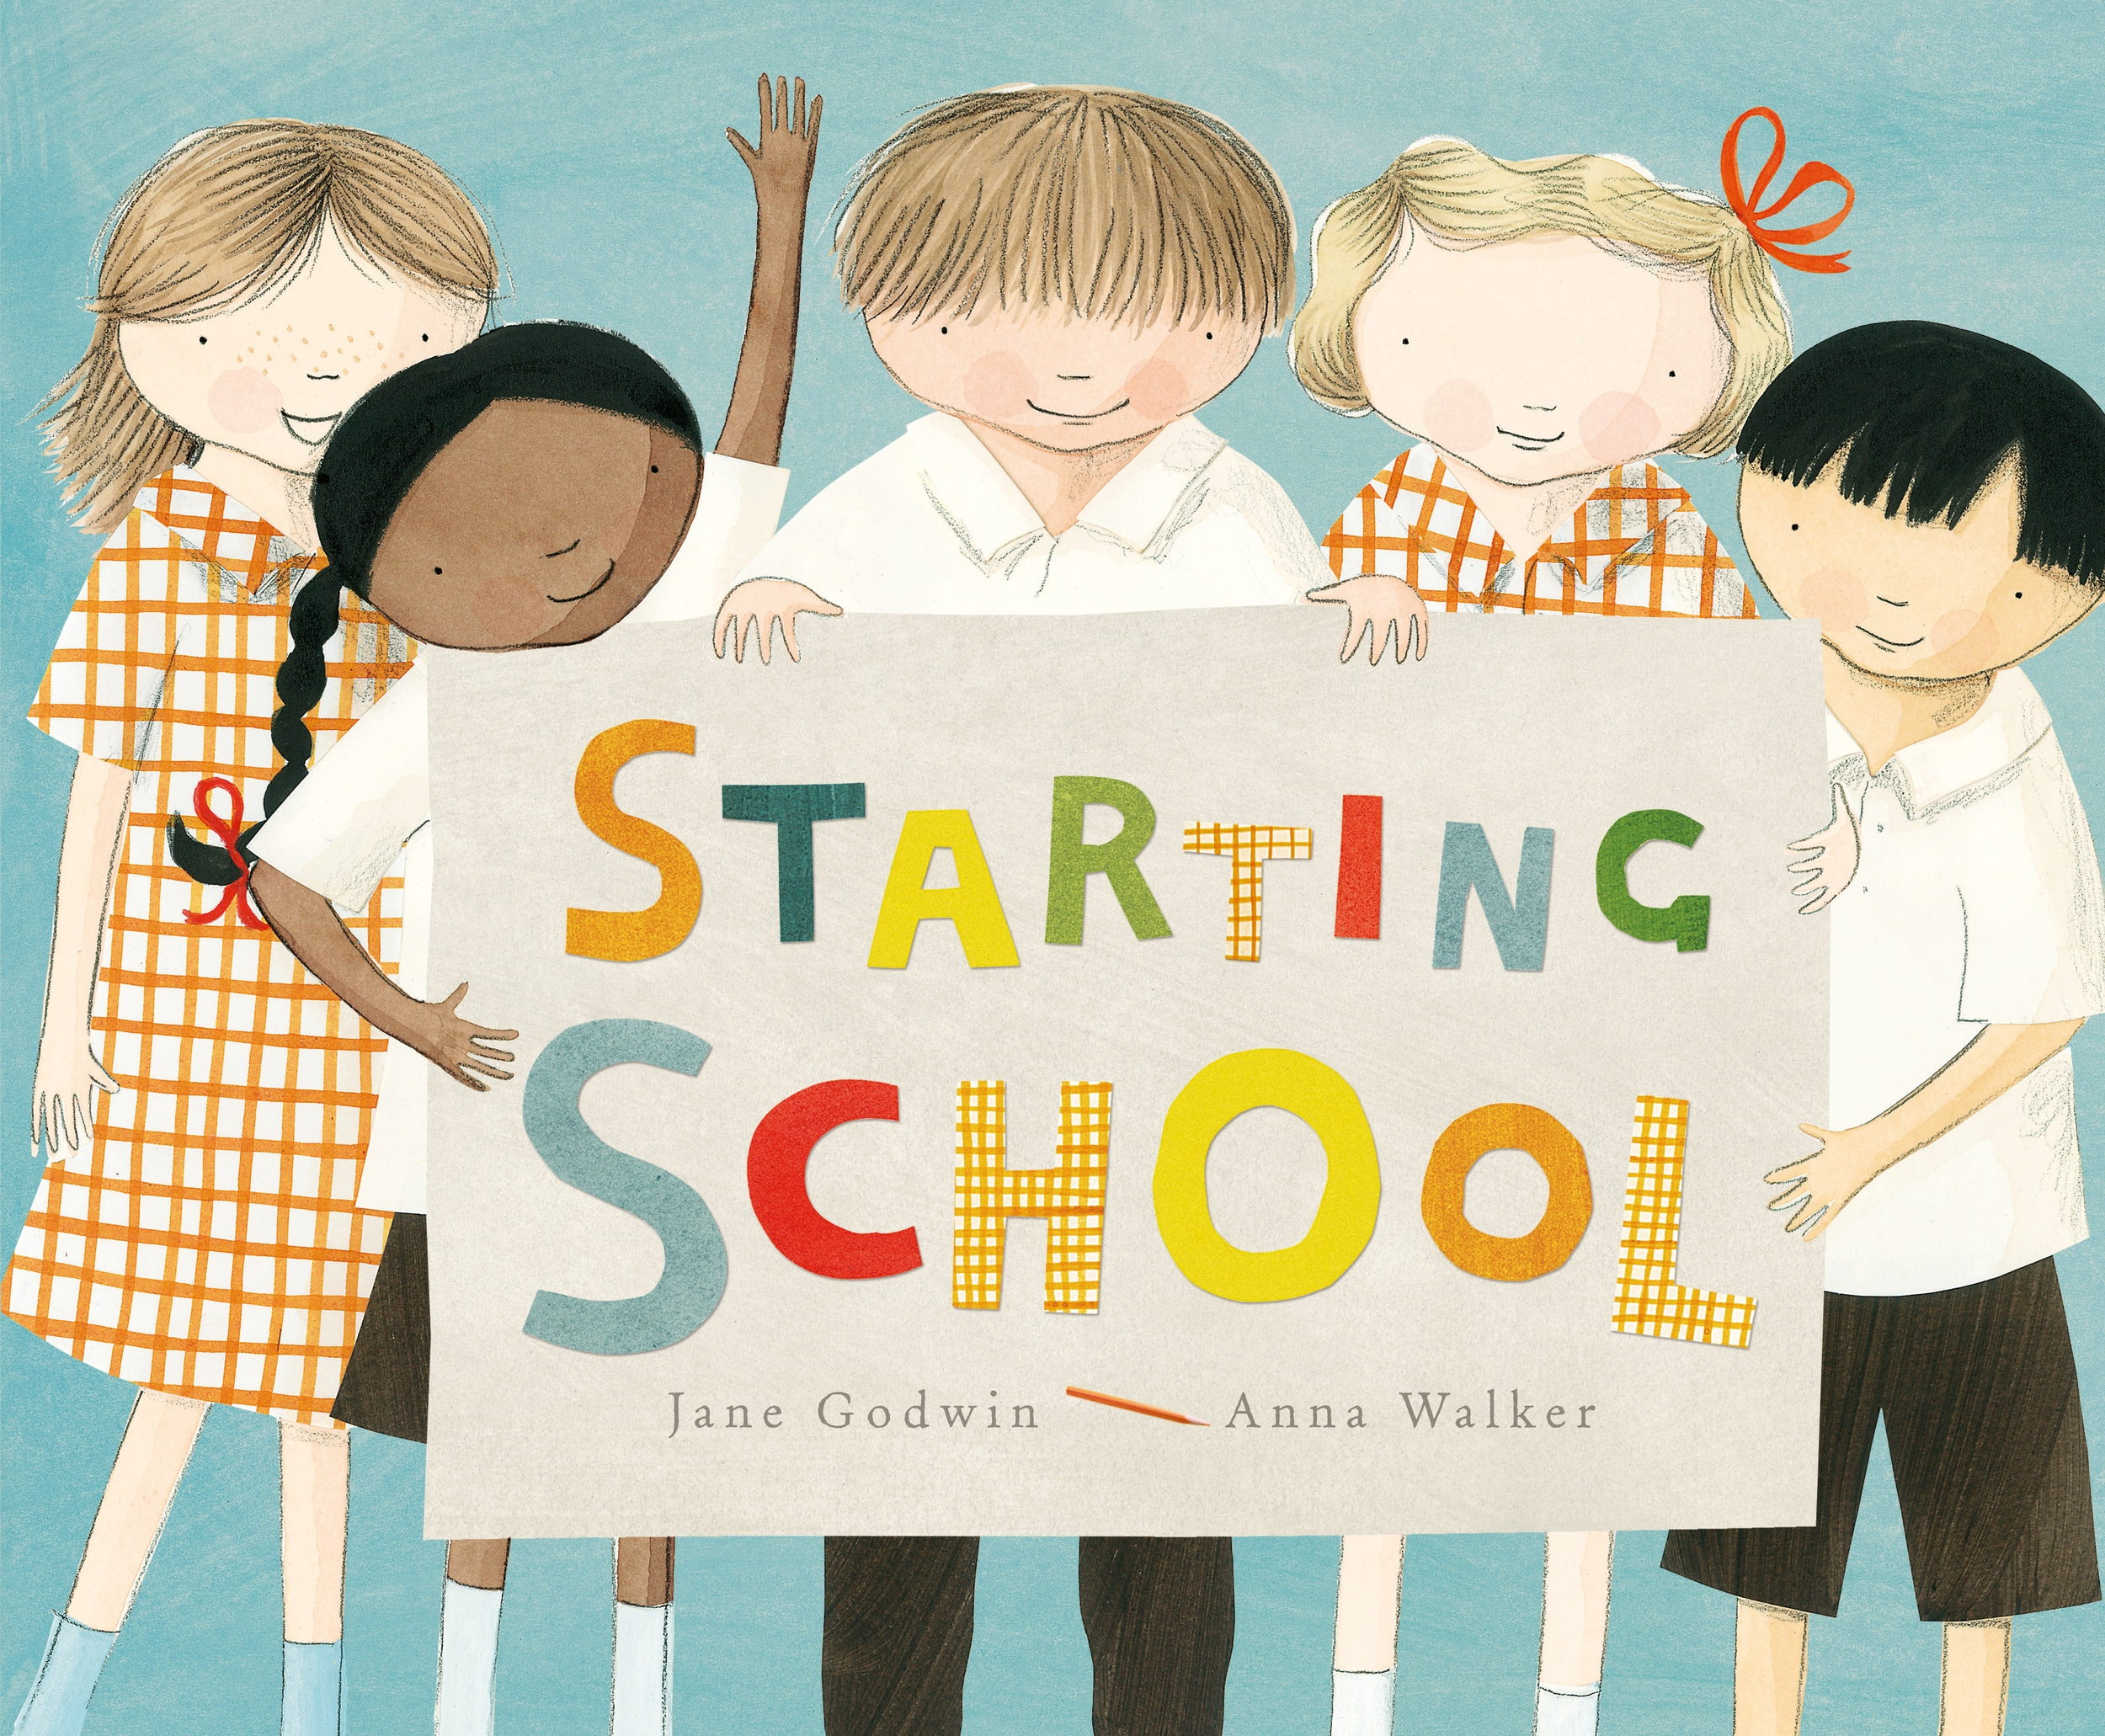 Starting School  (illustrated by Anna Walker)  September 2013   Starting School   When my daughter Lizzie was in prep (in 1988!), I made a book with her and her friends.    It was all about starting school.    We talked about different aspects of the first year at school, like the very first day, and making friends, and playing outside, and all the things they learned.    I kept that book, and I still have it today.    So when Anna and I came to make a book about starting school, I got that old book out and our book is loosely based on the book I made with Lizzie and her friends all those years ago.